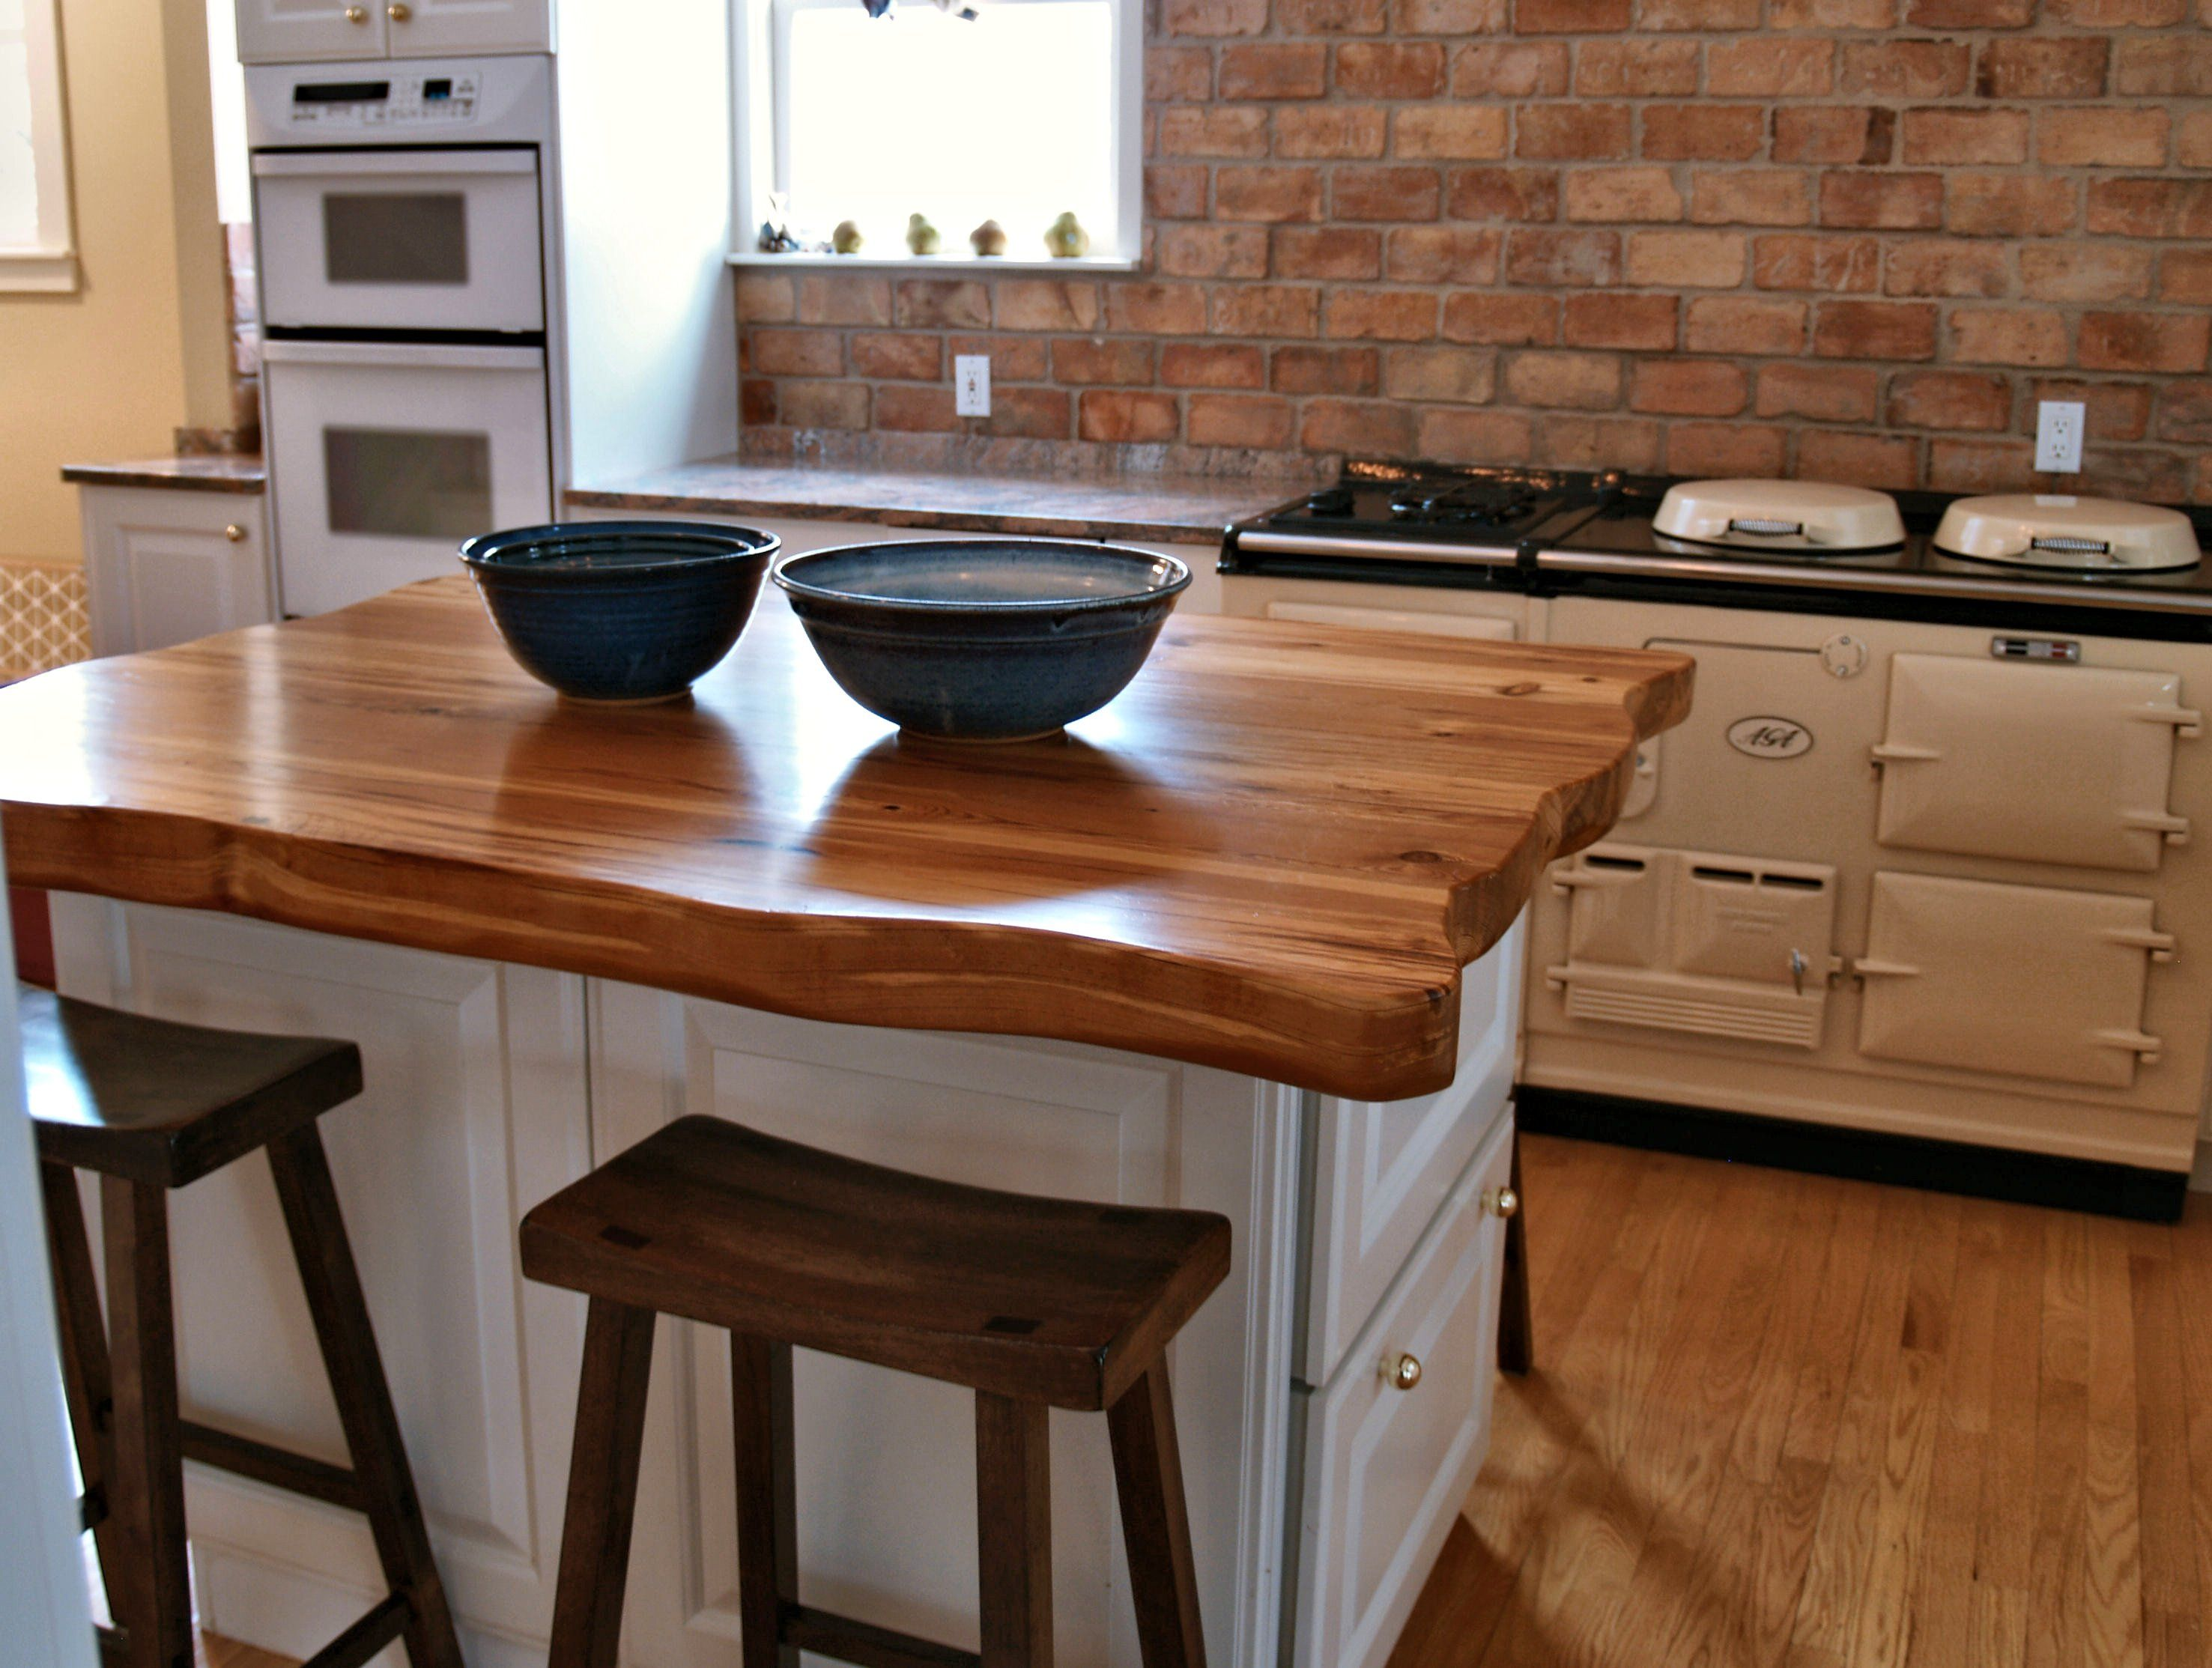 Reclaimed Longleaf Pine Wood Countertop Photo Gallery, by ...